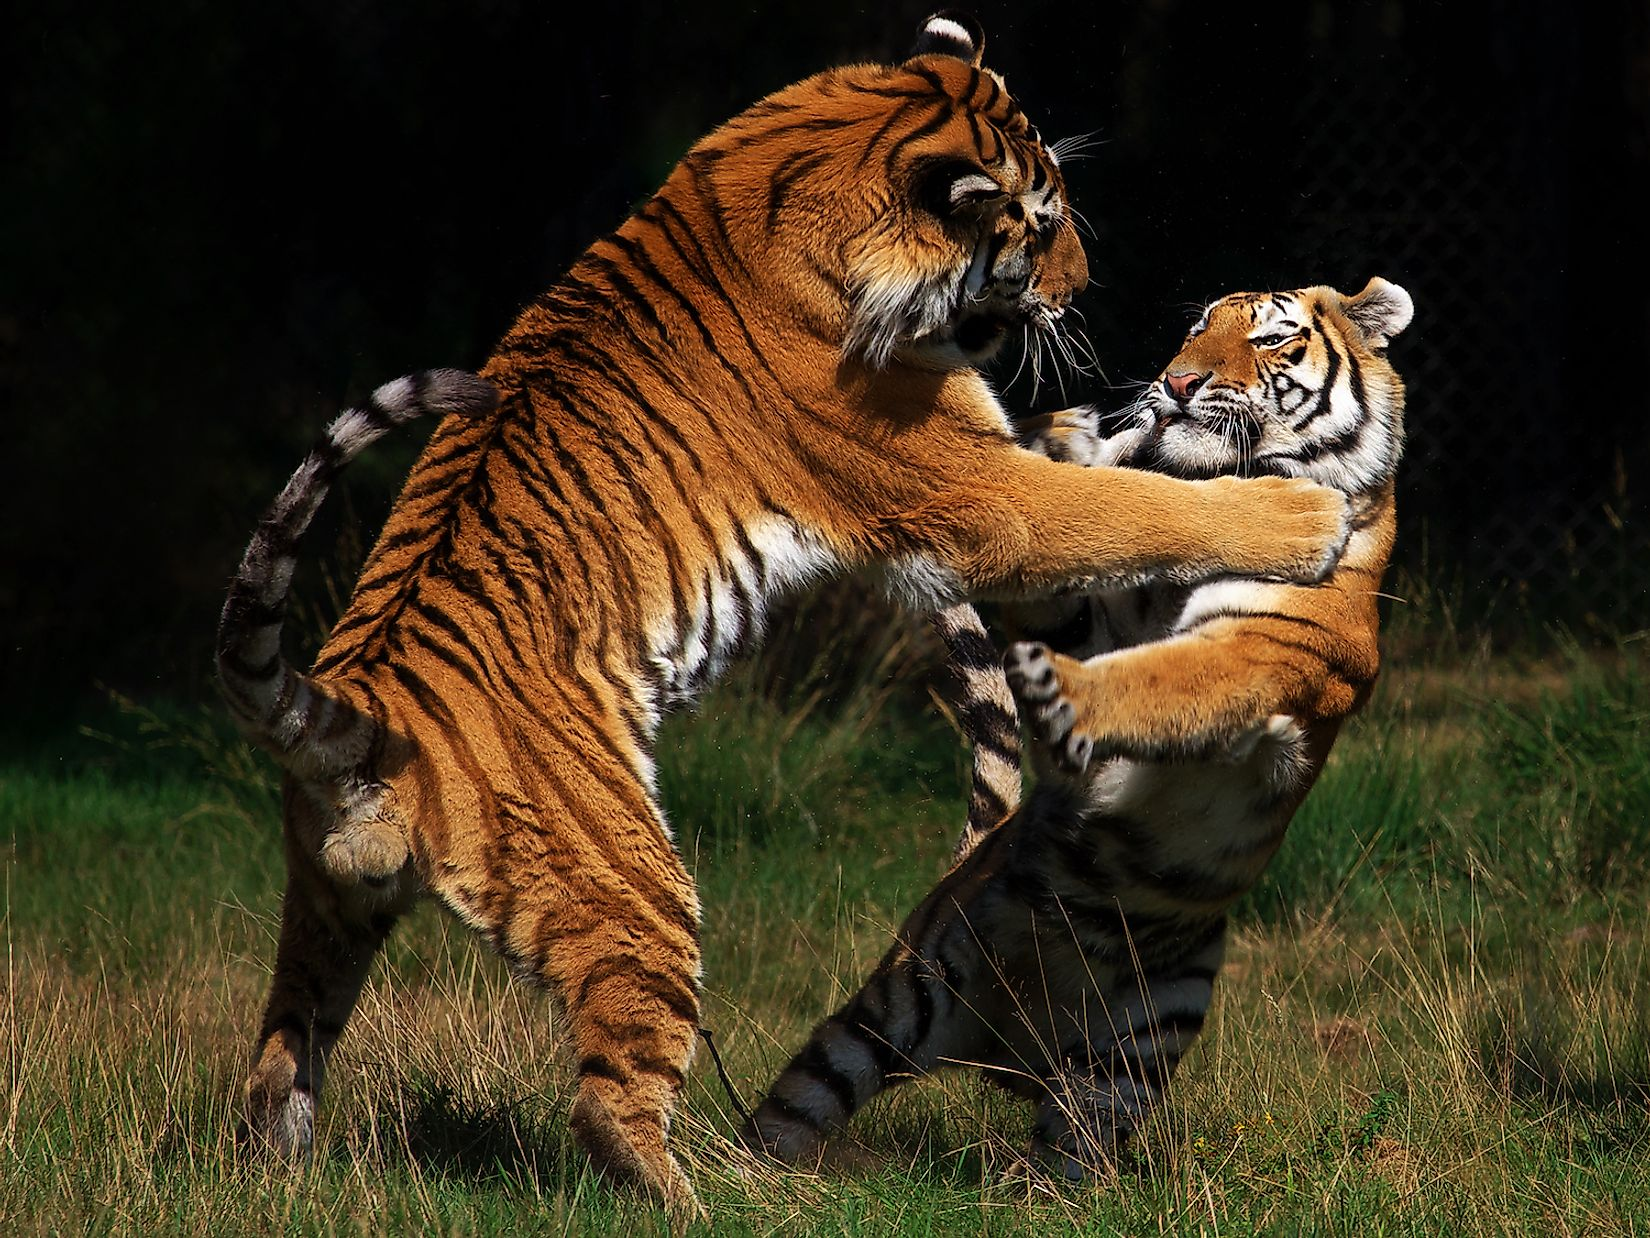 Two tigers fighting each other. Image credit: Nick Biemans/Shutterstock.com